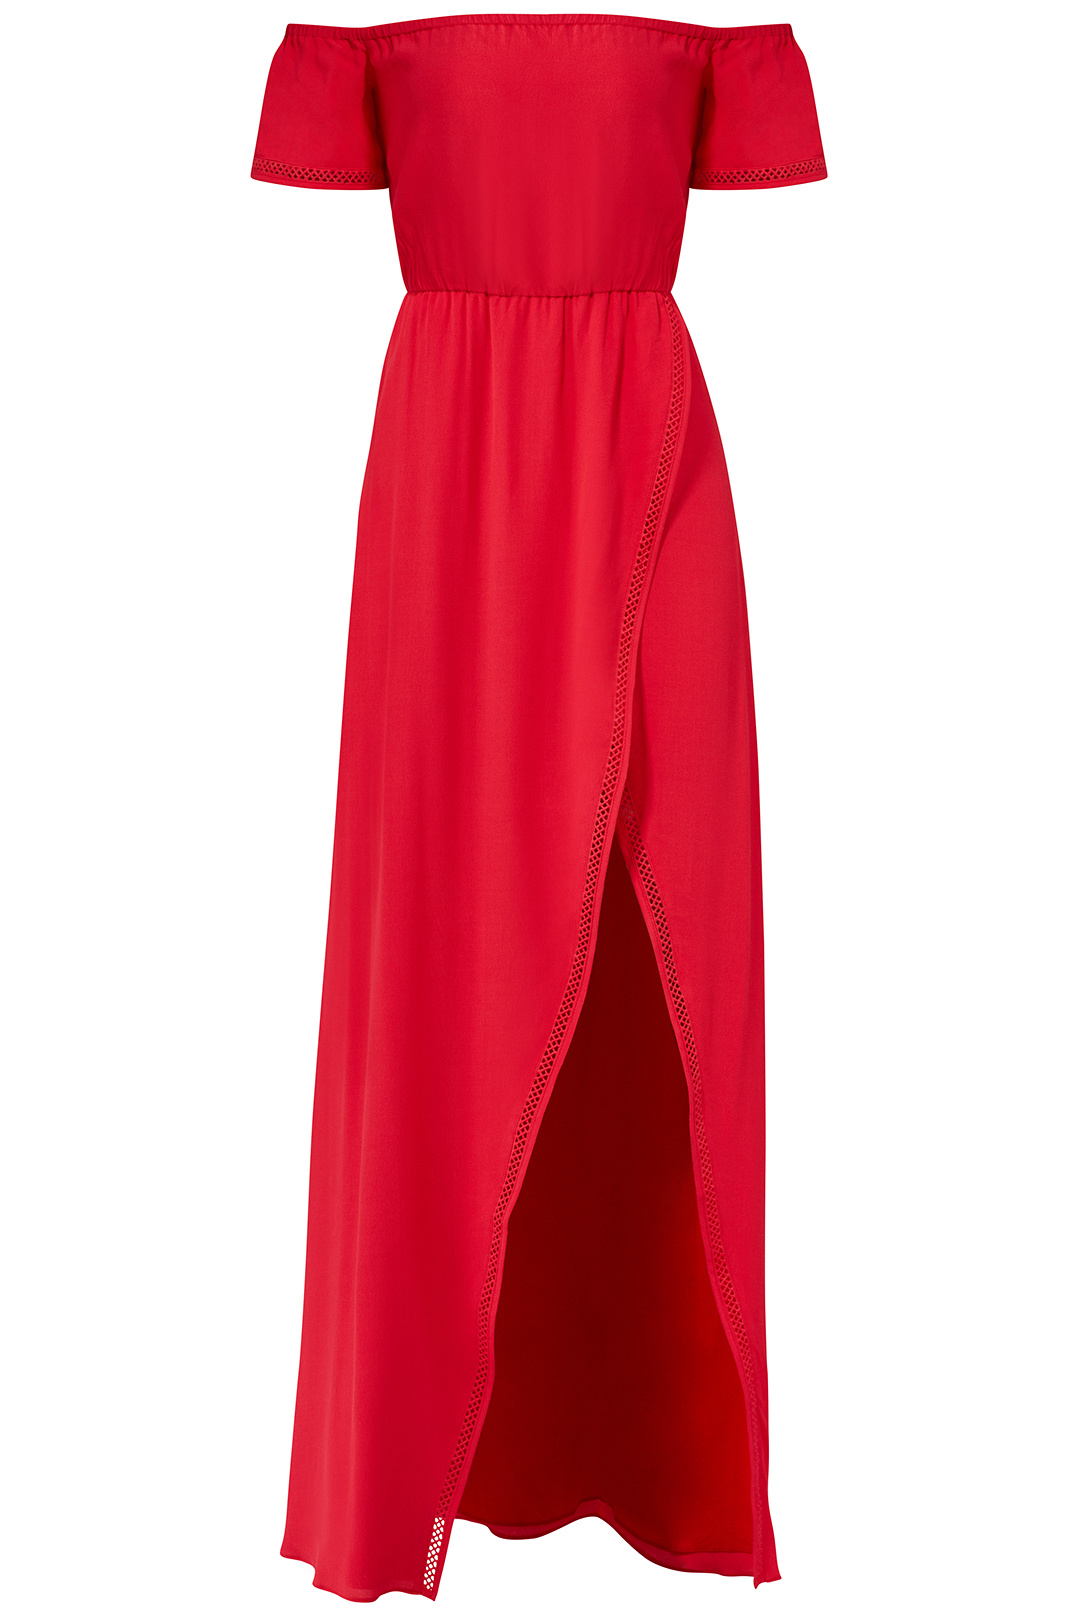 Details about Lovers + Friends Red Women s XS Off Shoulder Front Slit Maxi  Dress  218-  703 4acdf5df0f